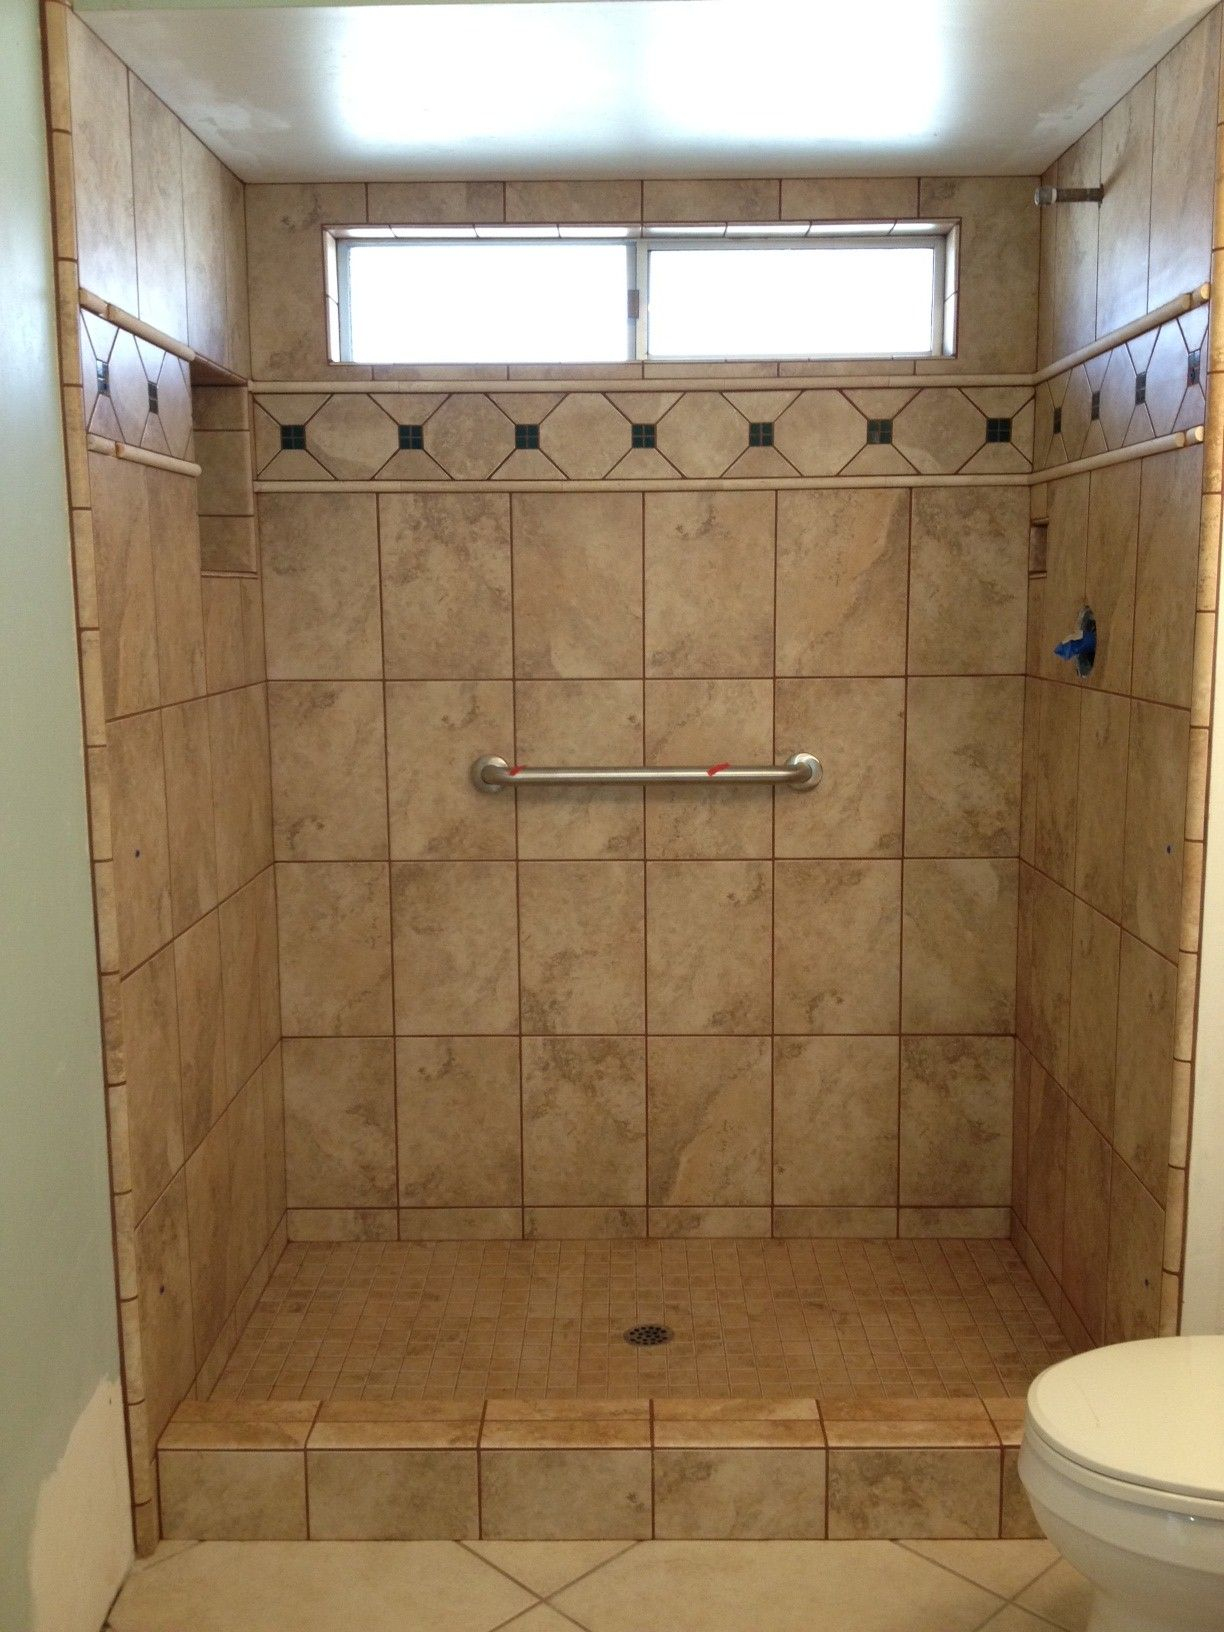 photos of tiled shower stalls photos gallery custom tile work co ceramic - Custom Shower Design Ideas